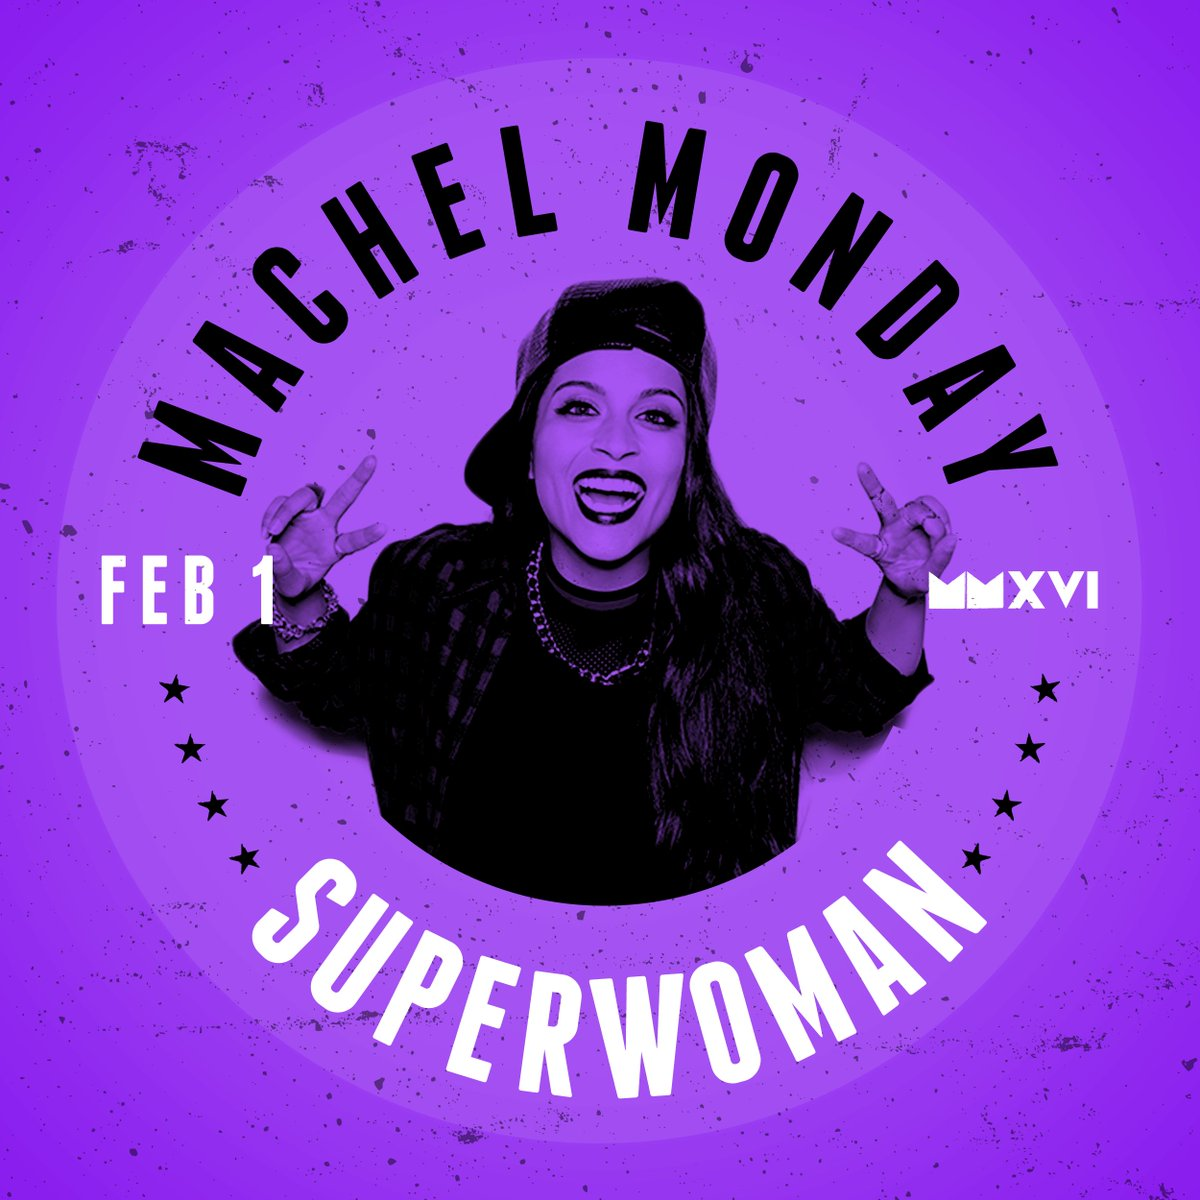 Exited for these comedic stars to host the #MachelMonday stage! #MovieTime @IISuperwomanII #MajahHype #RoDey https://t.co/Z1dj6tD6qf